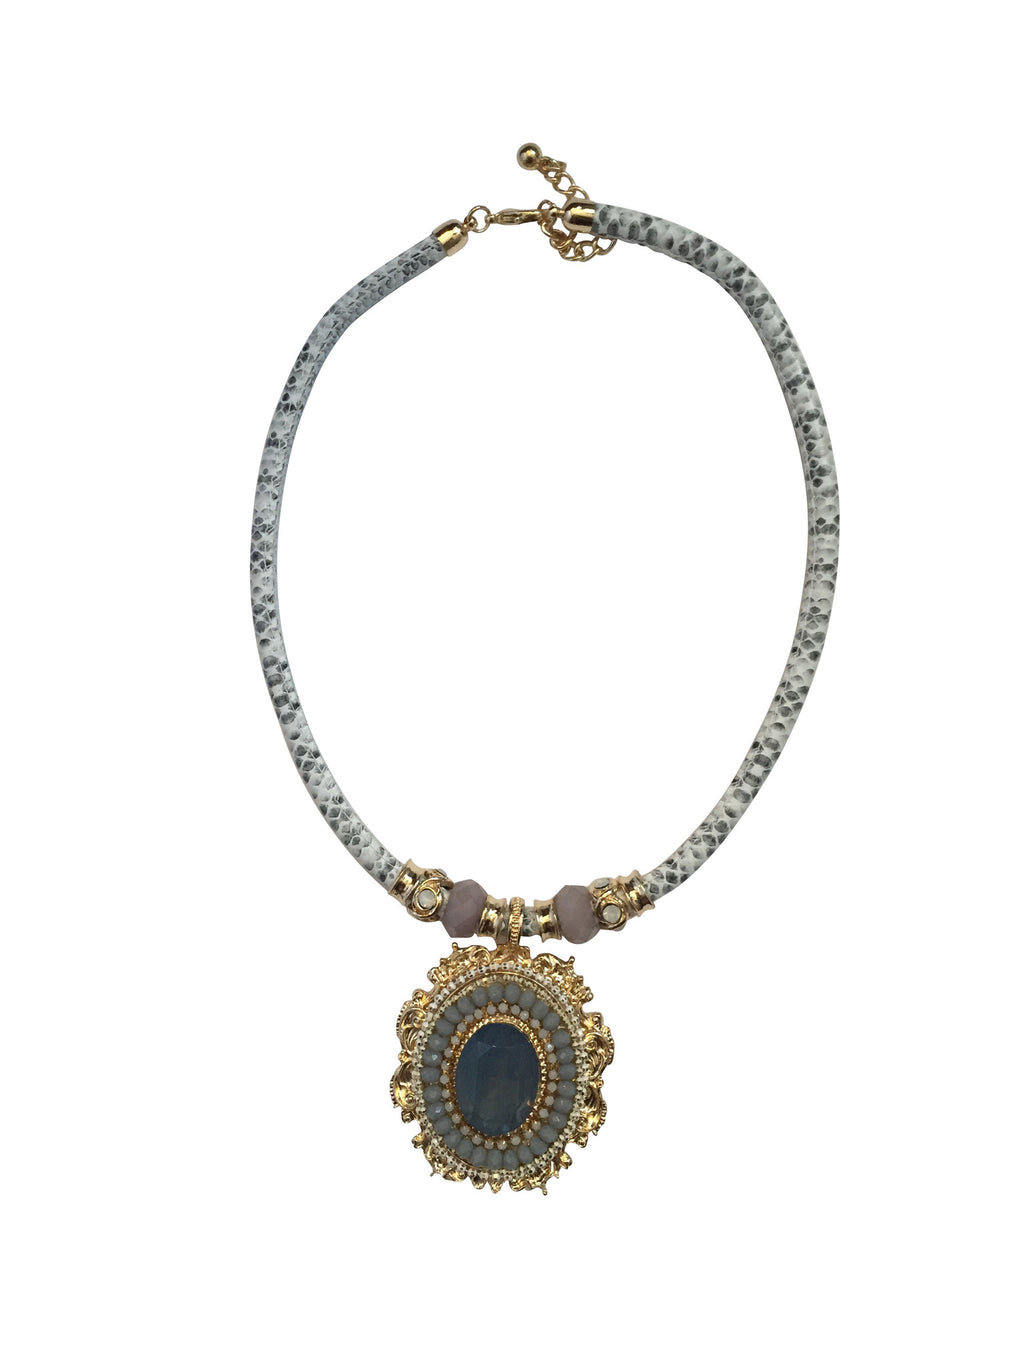 Queen Elizabeth Statement Necklace